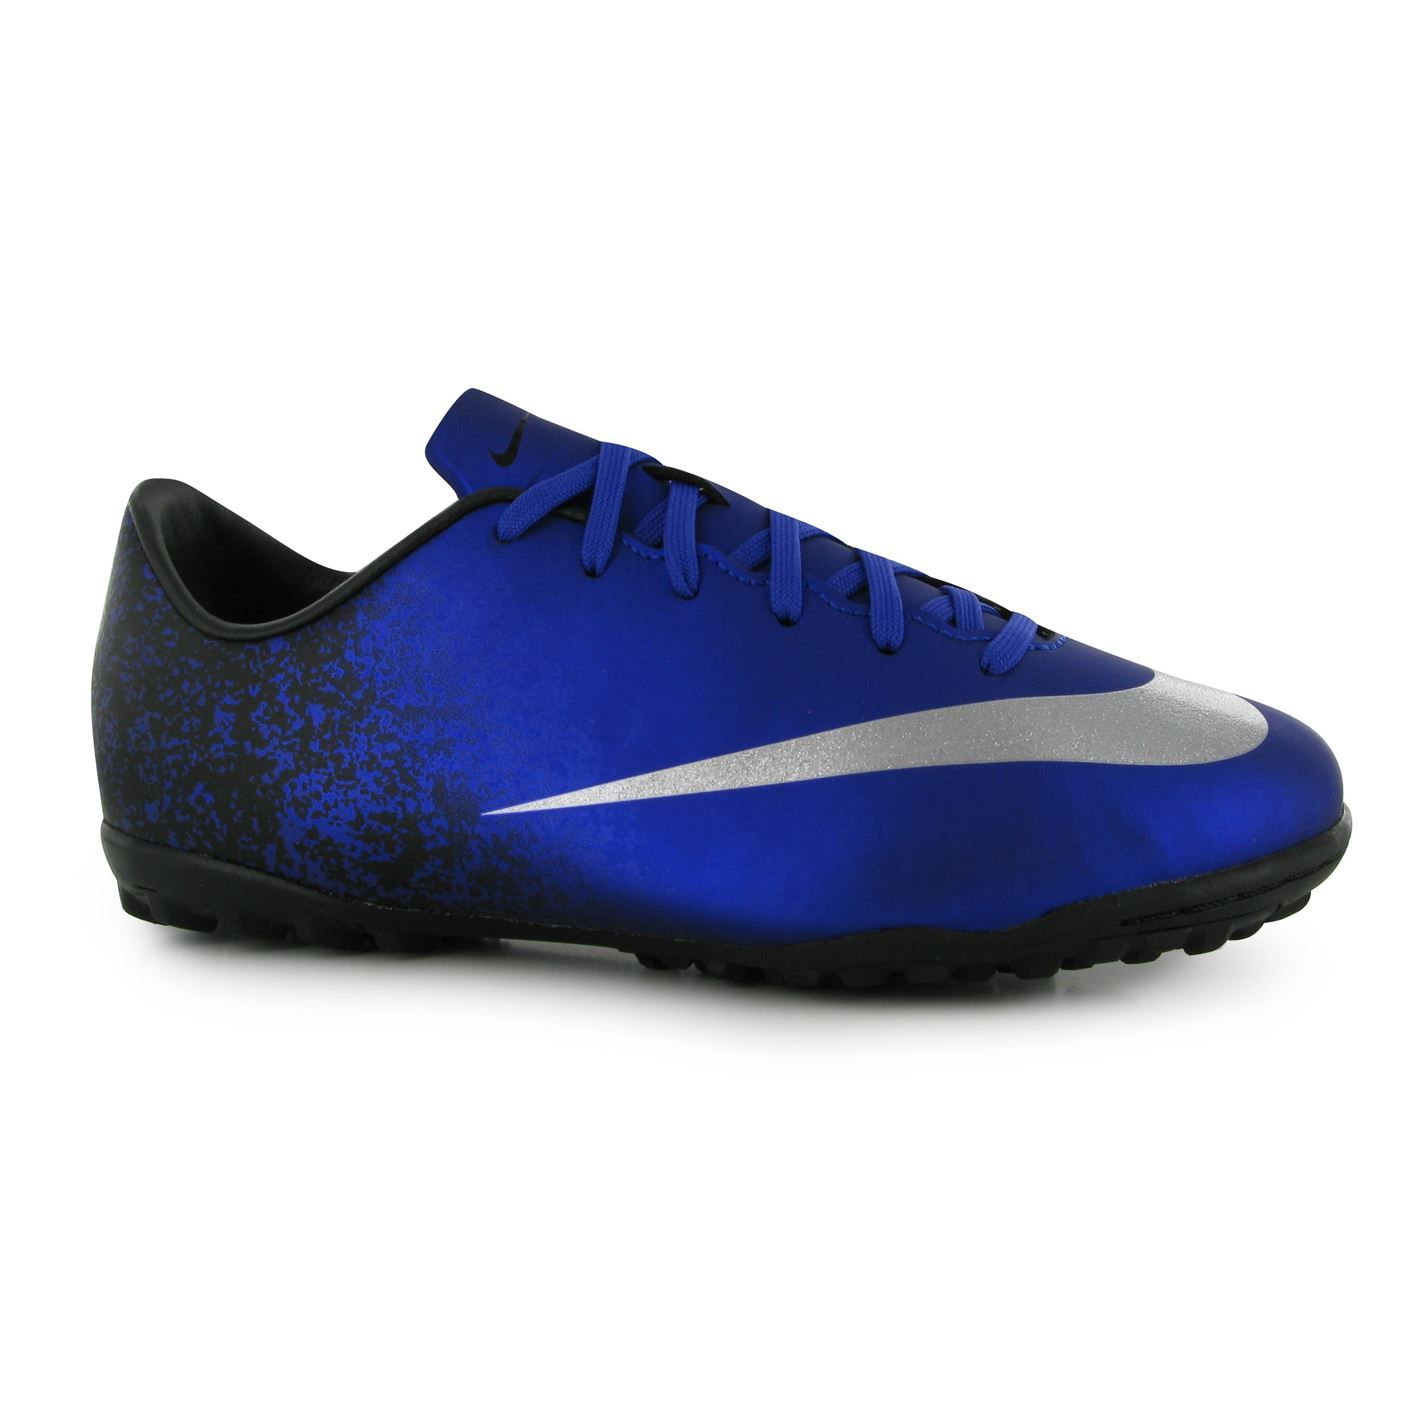 Nike Football Boots Cr7